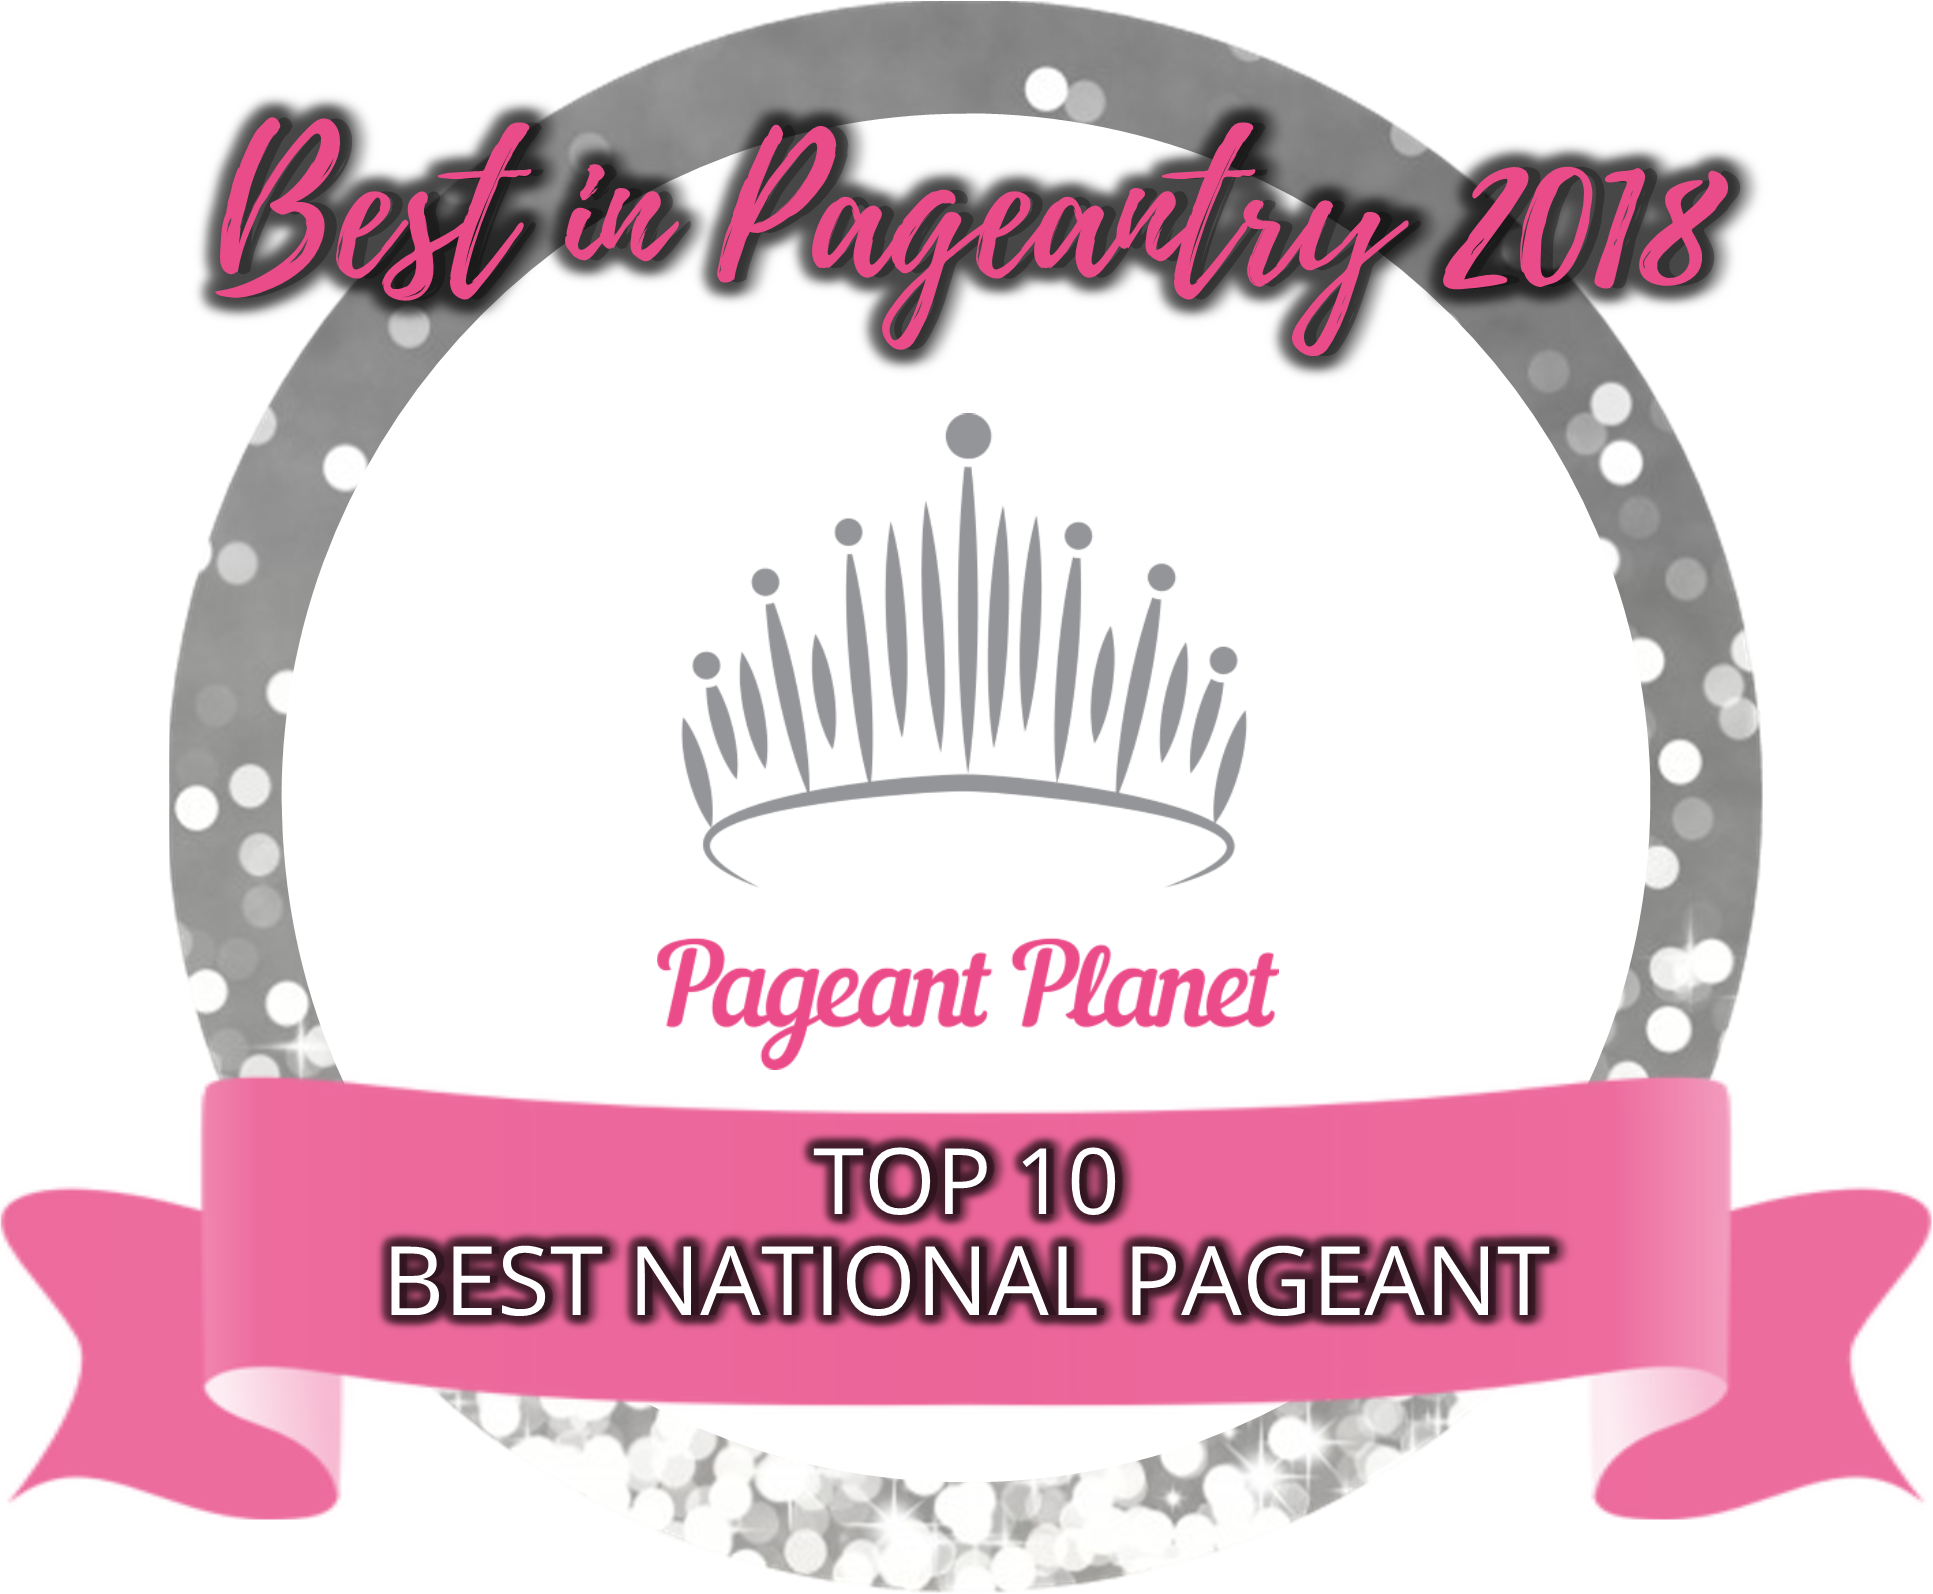 Top 10 Best National Pageant of 2018